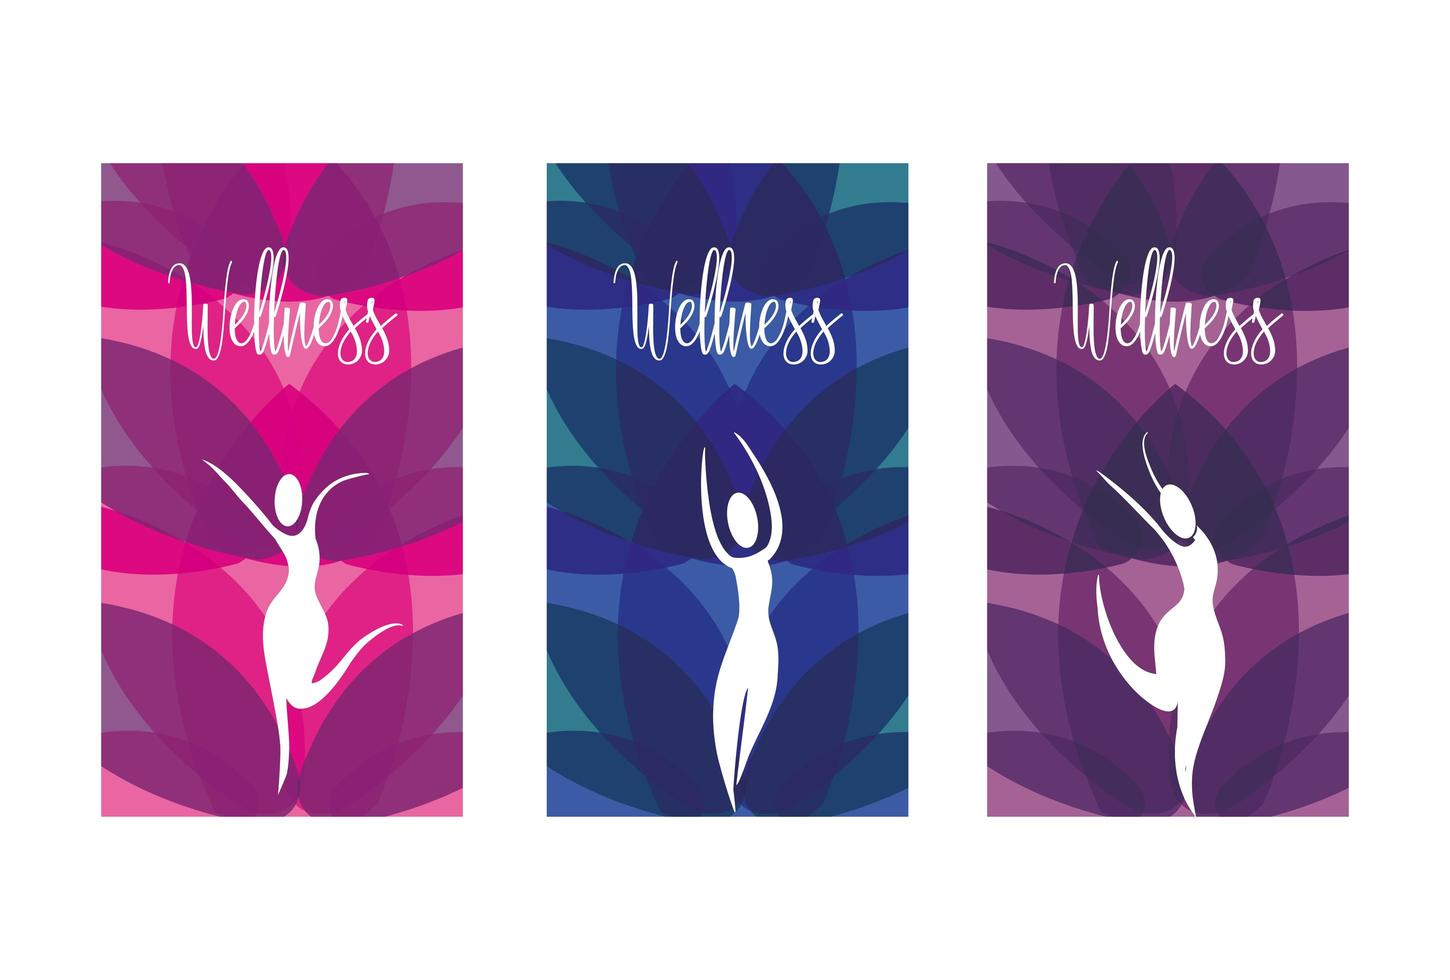 Set of wellness icons of women with nature elements vector